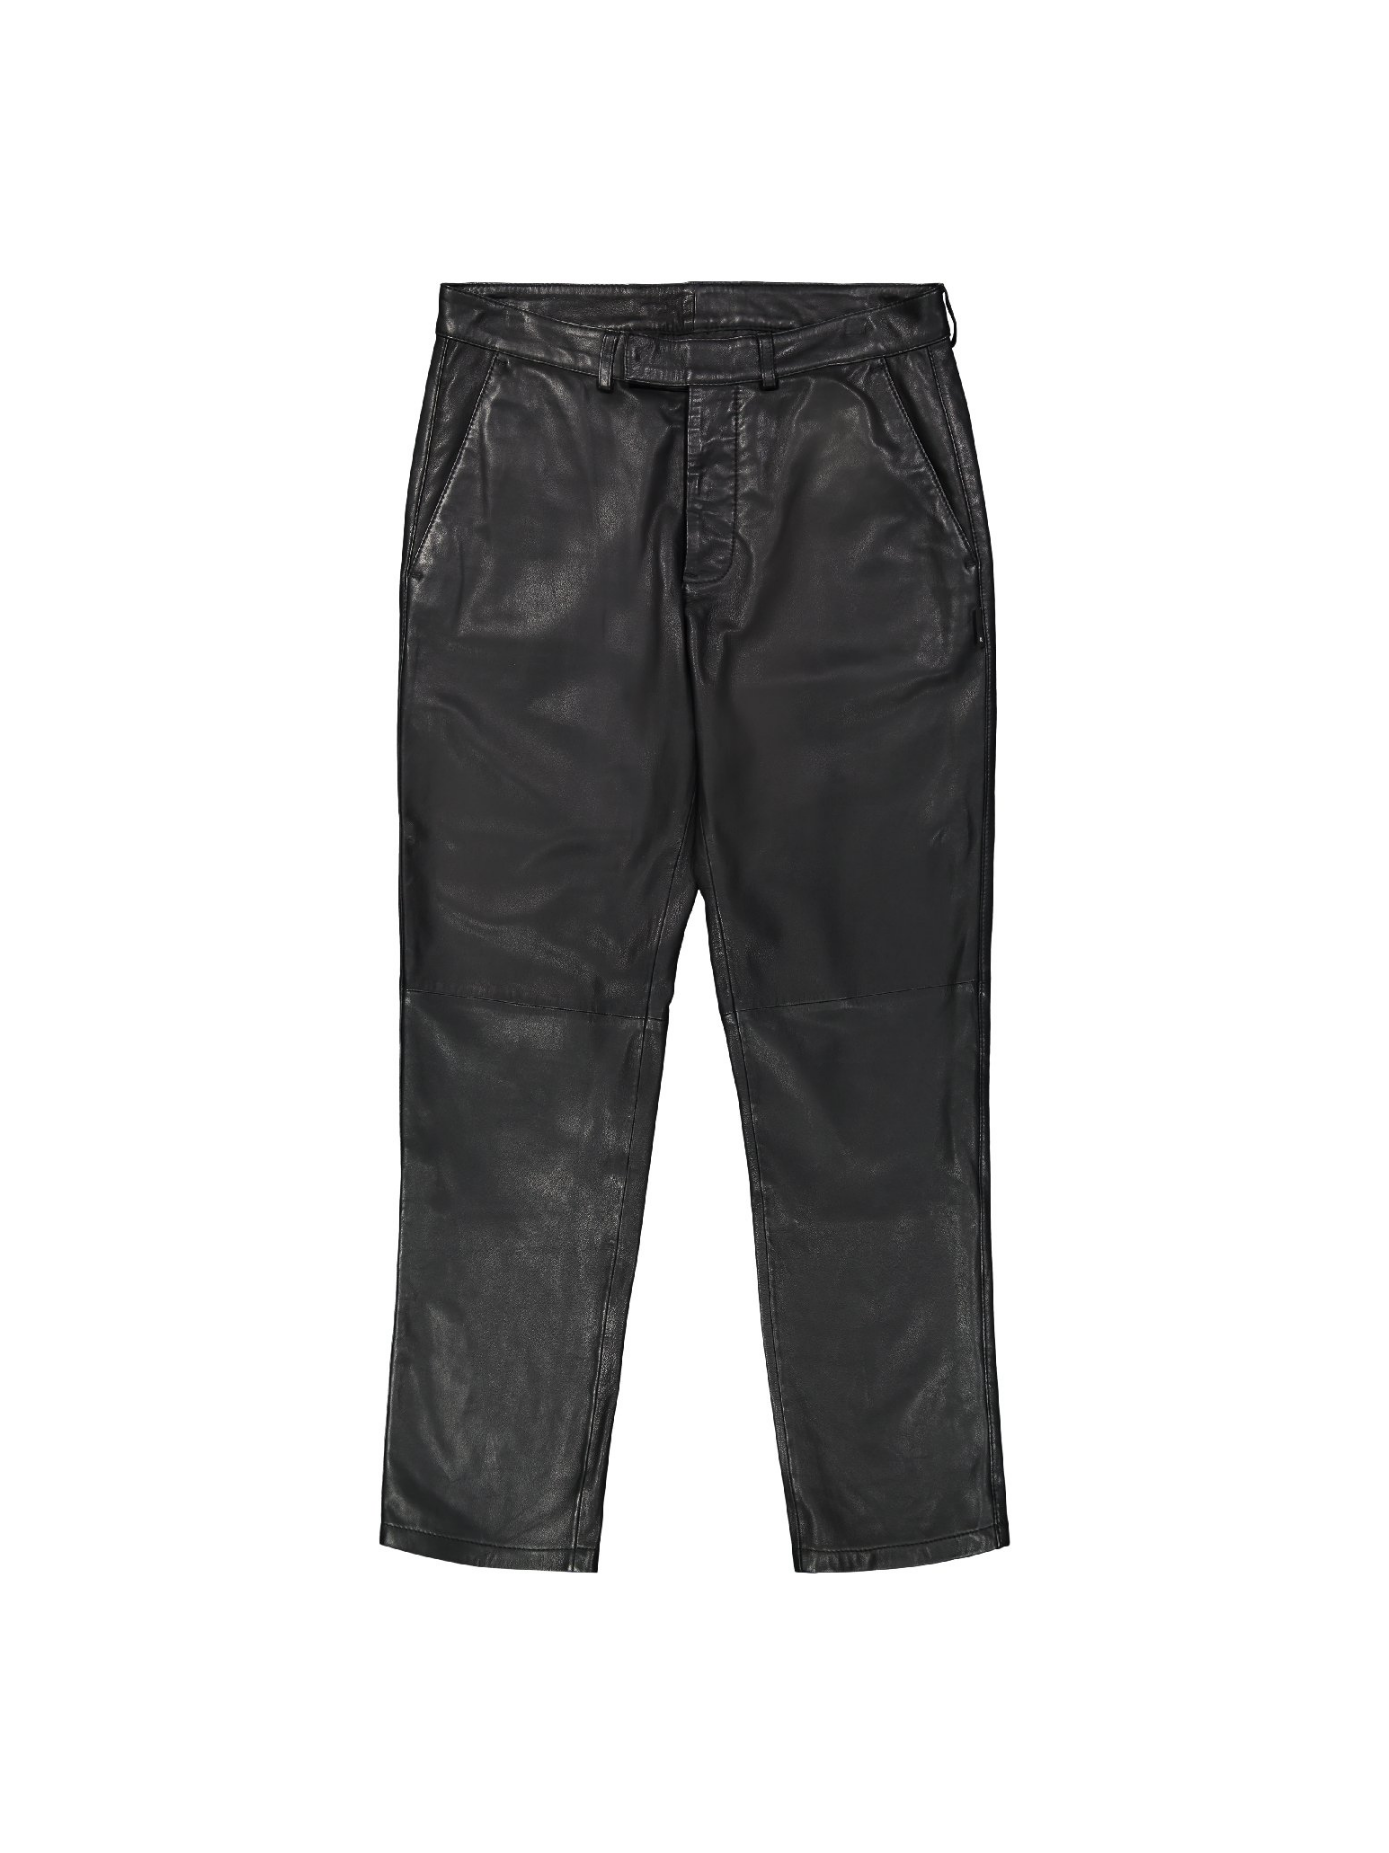 black - creased trouser